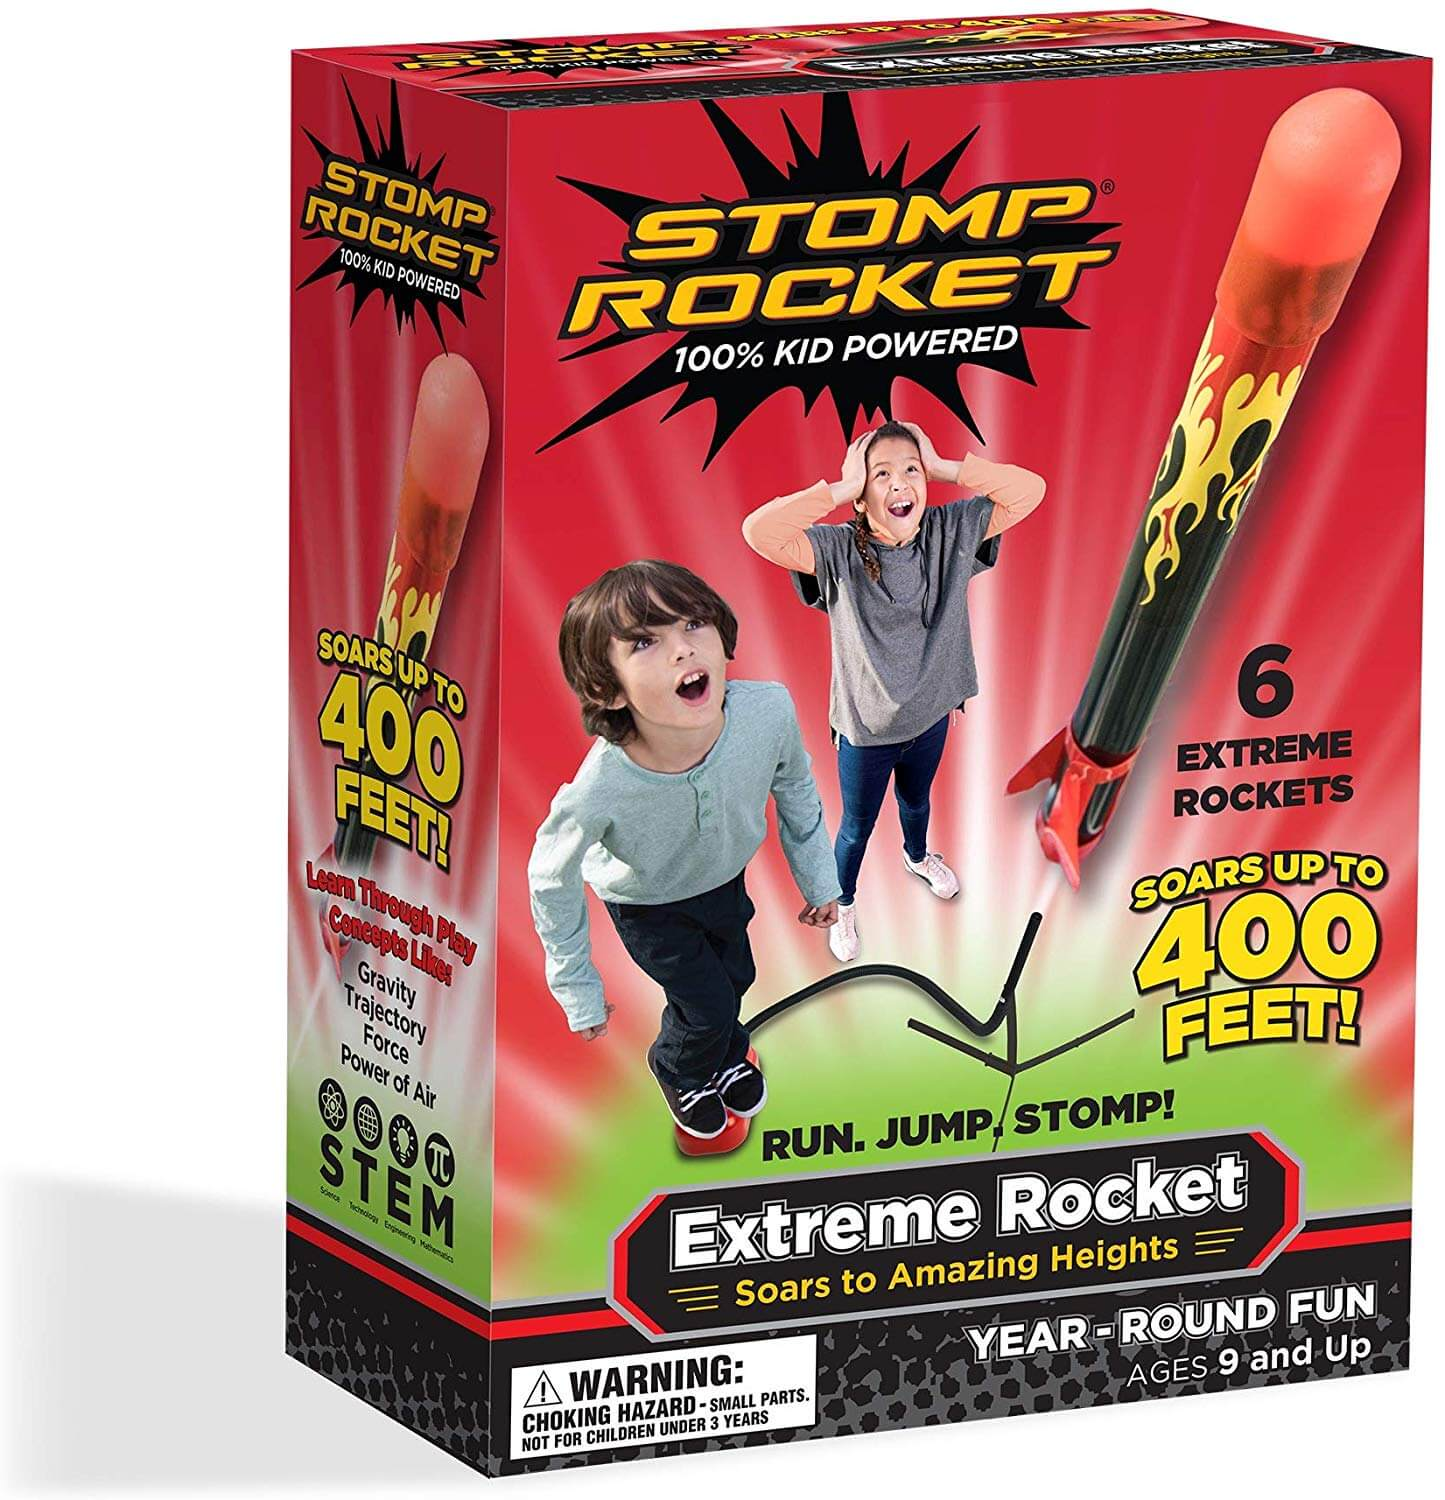 outdoor-rocket-gift-toy